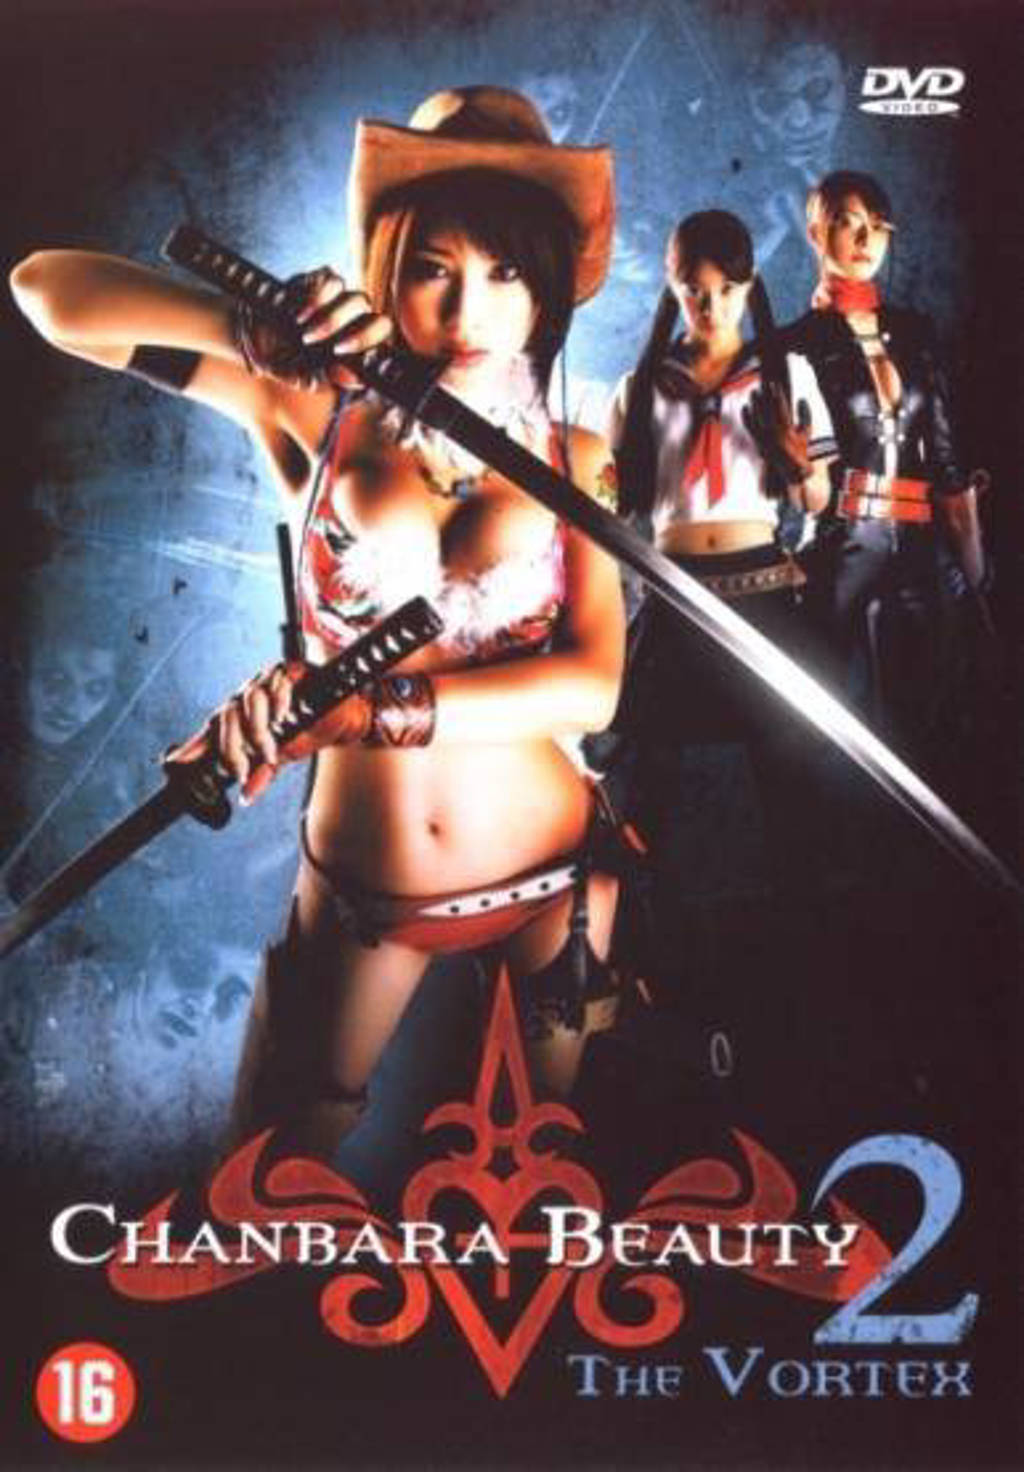 Chanbara beauty 2 - The vortex (DVD)